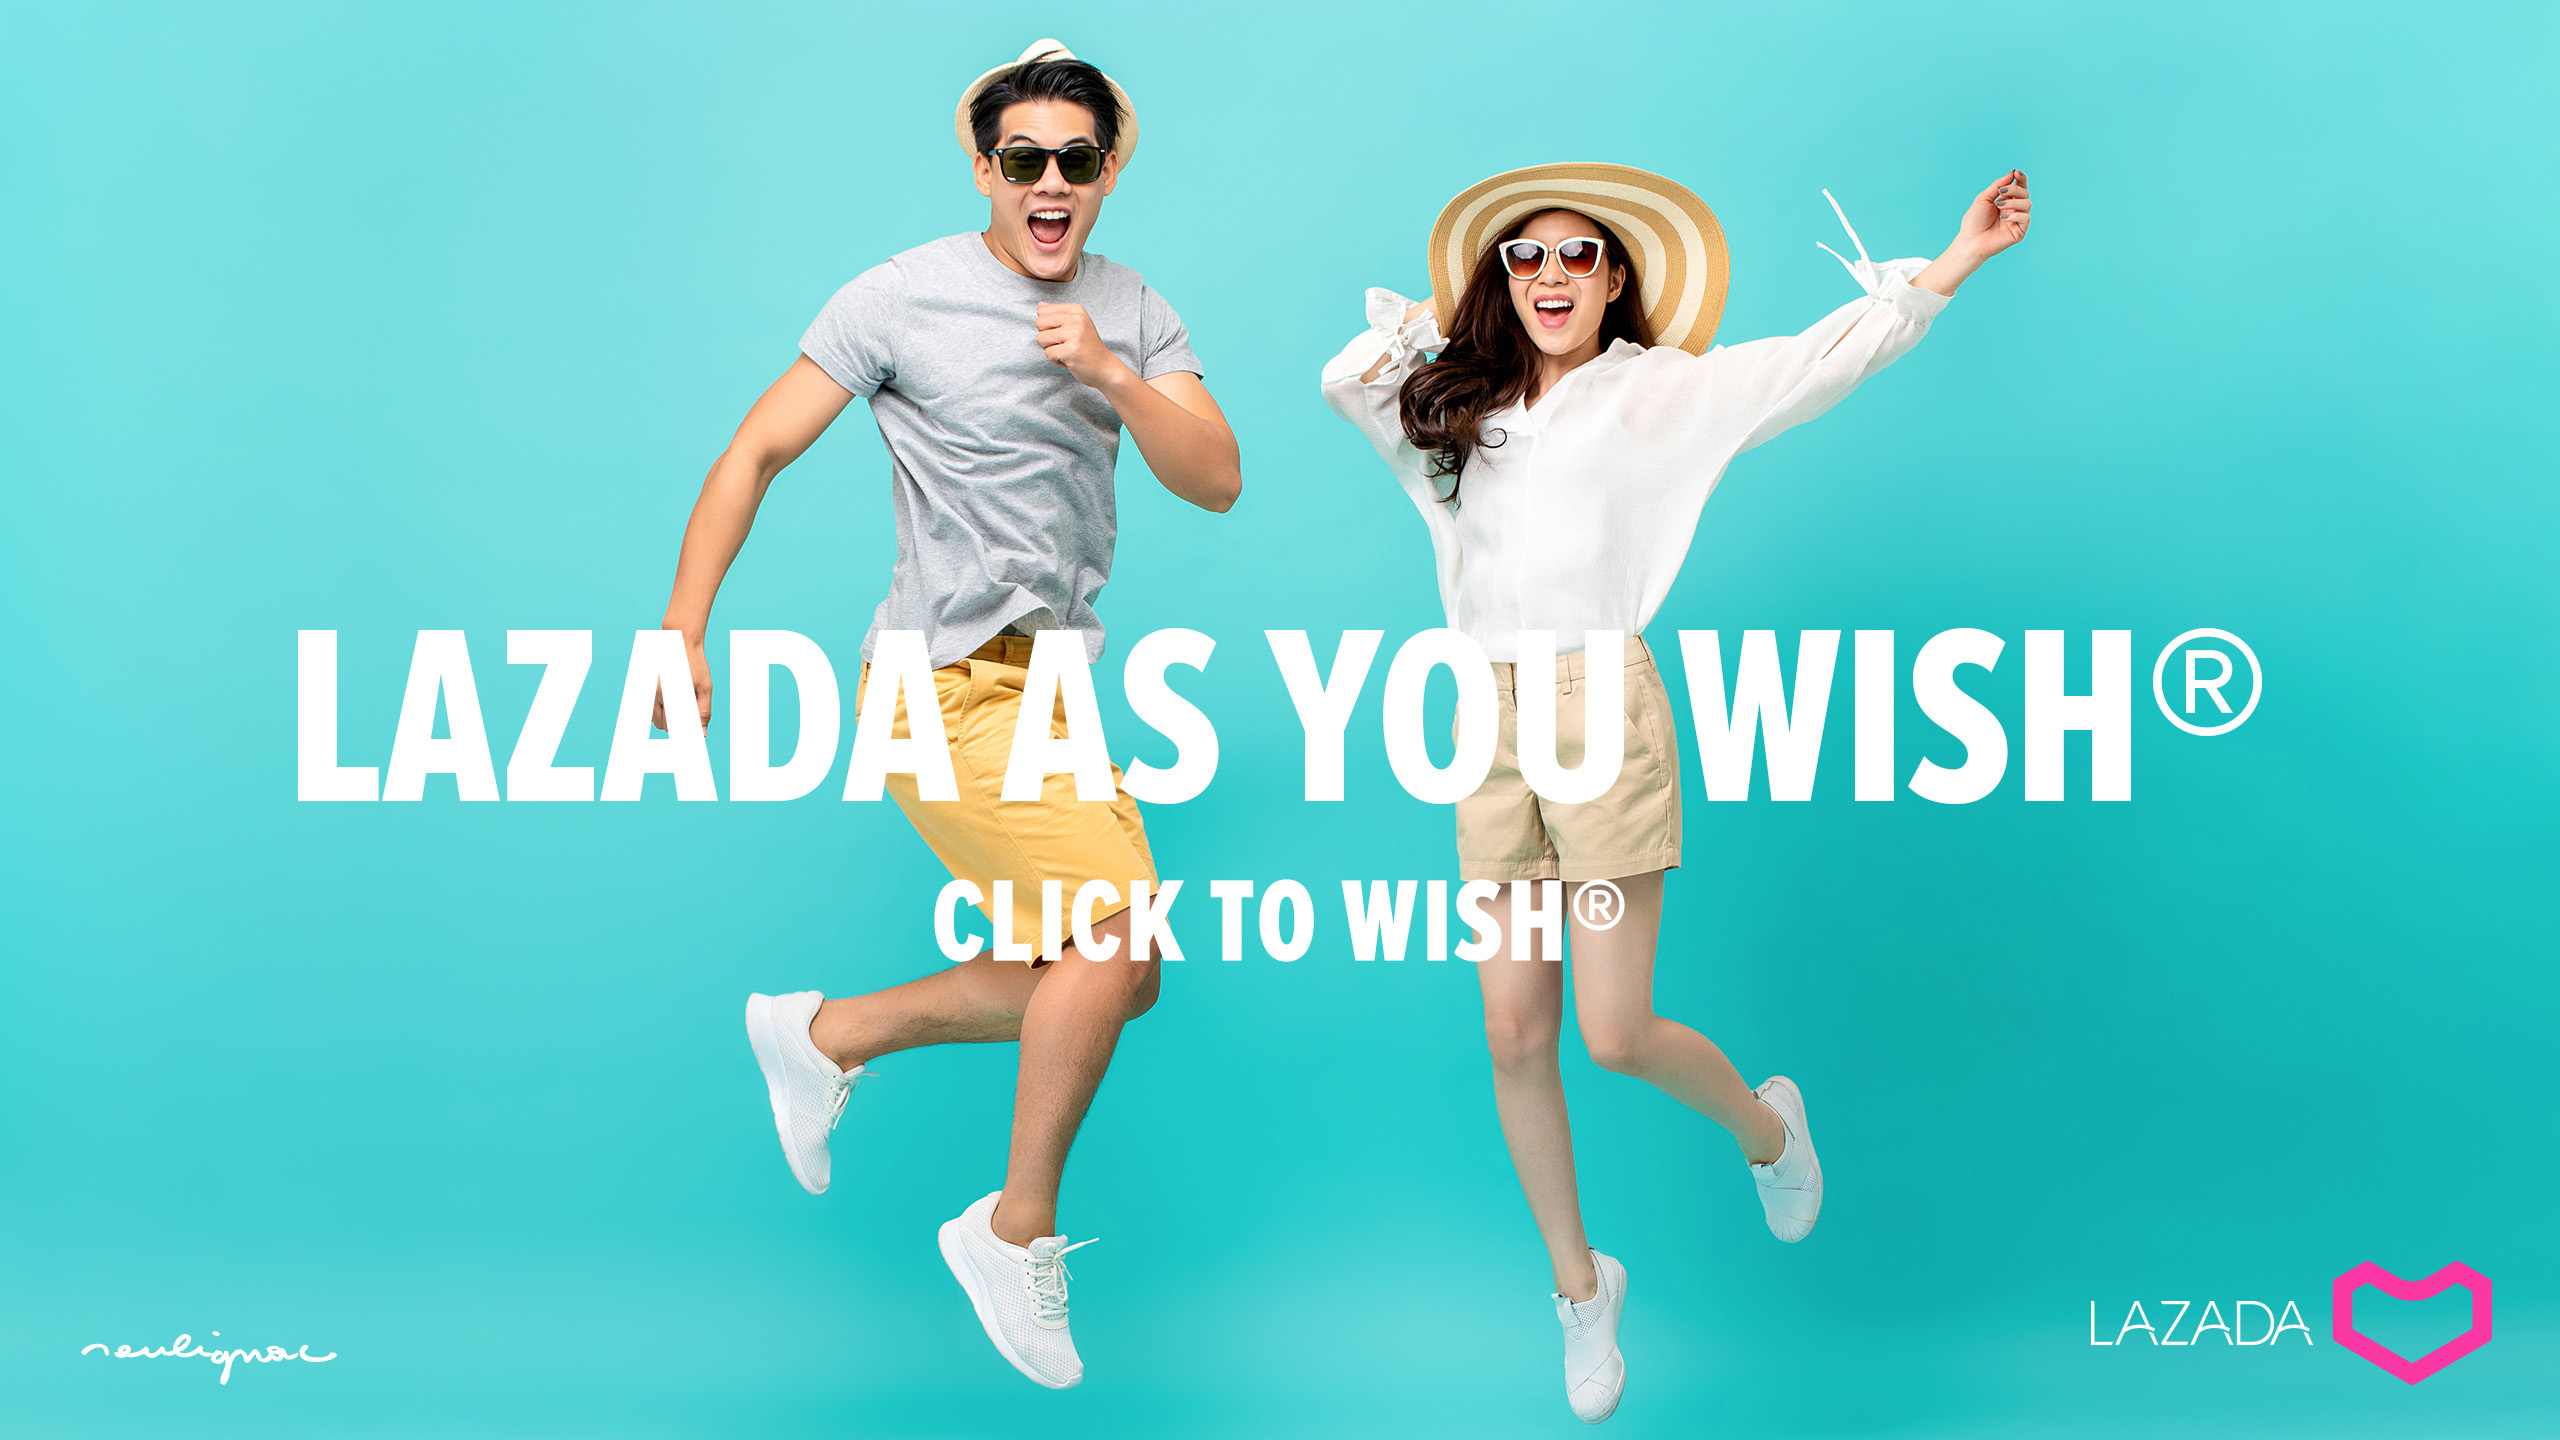 LAZADA Group - Digital Campaign - AS YOU WISH - Francois Soulignac - Digital Creative & Art Director - MADJOR Labbrand Shanghai